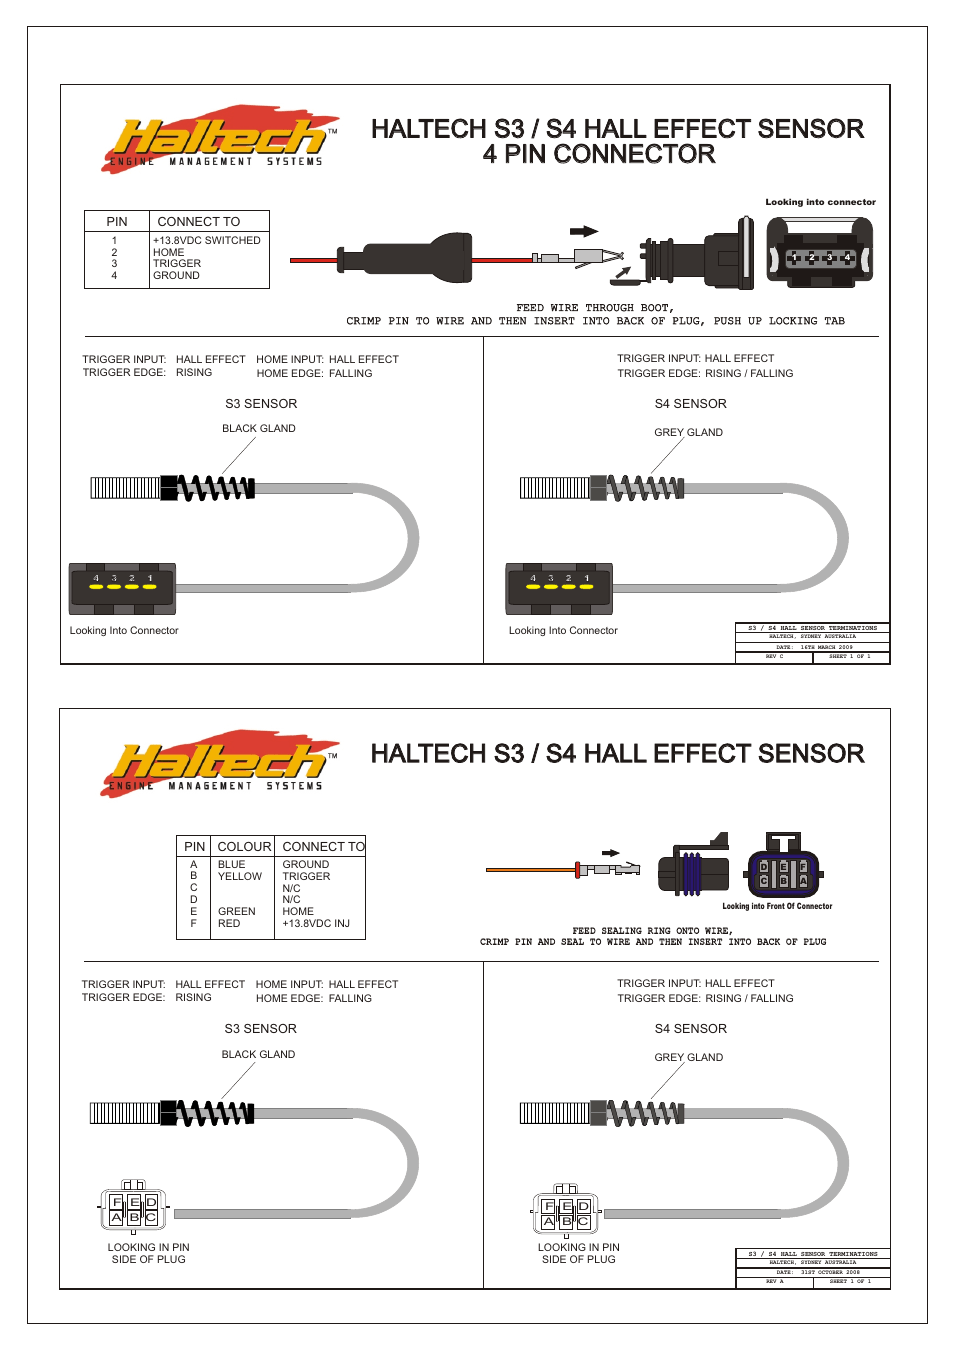 hight resolution of  manual page 98 99 haltech s3 s4 hall effect sensor 4 pin connector haltech s3 s4 rh manualsdir com hall